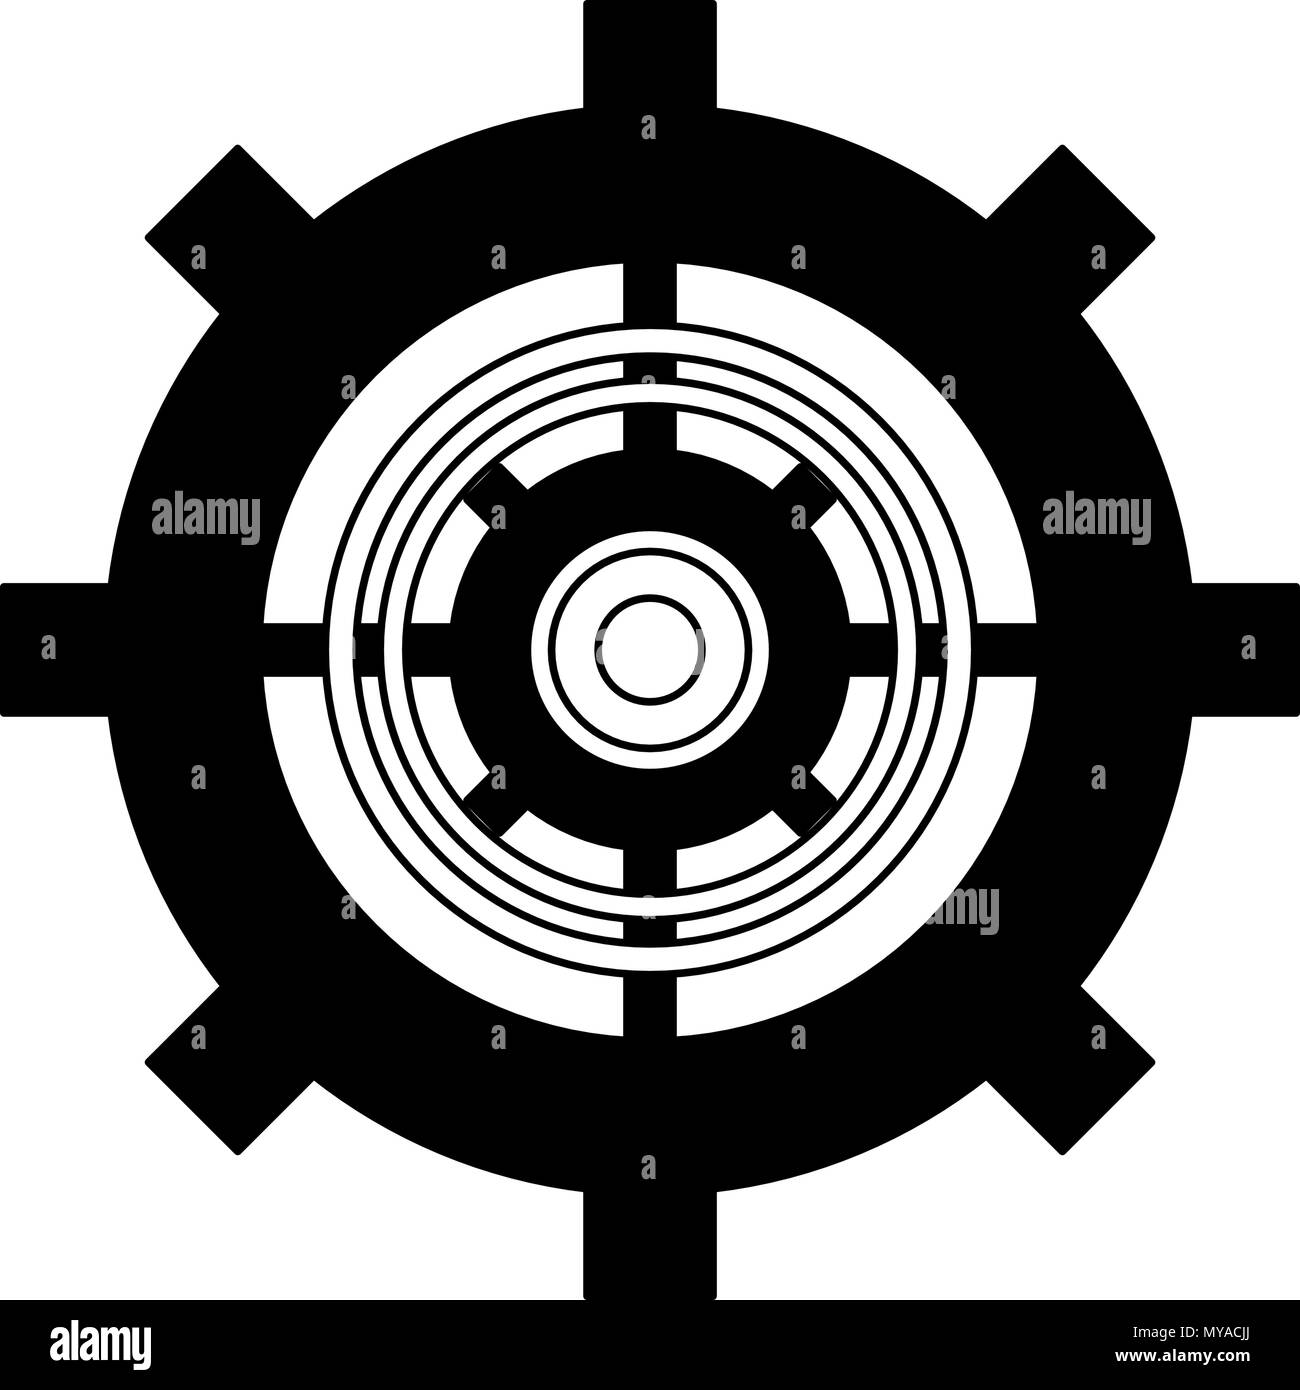 Gear working symbol in black and white - Stock Vector